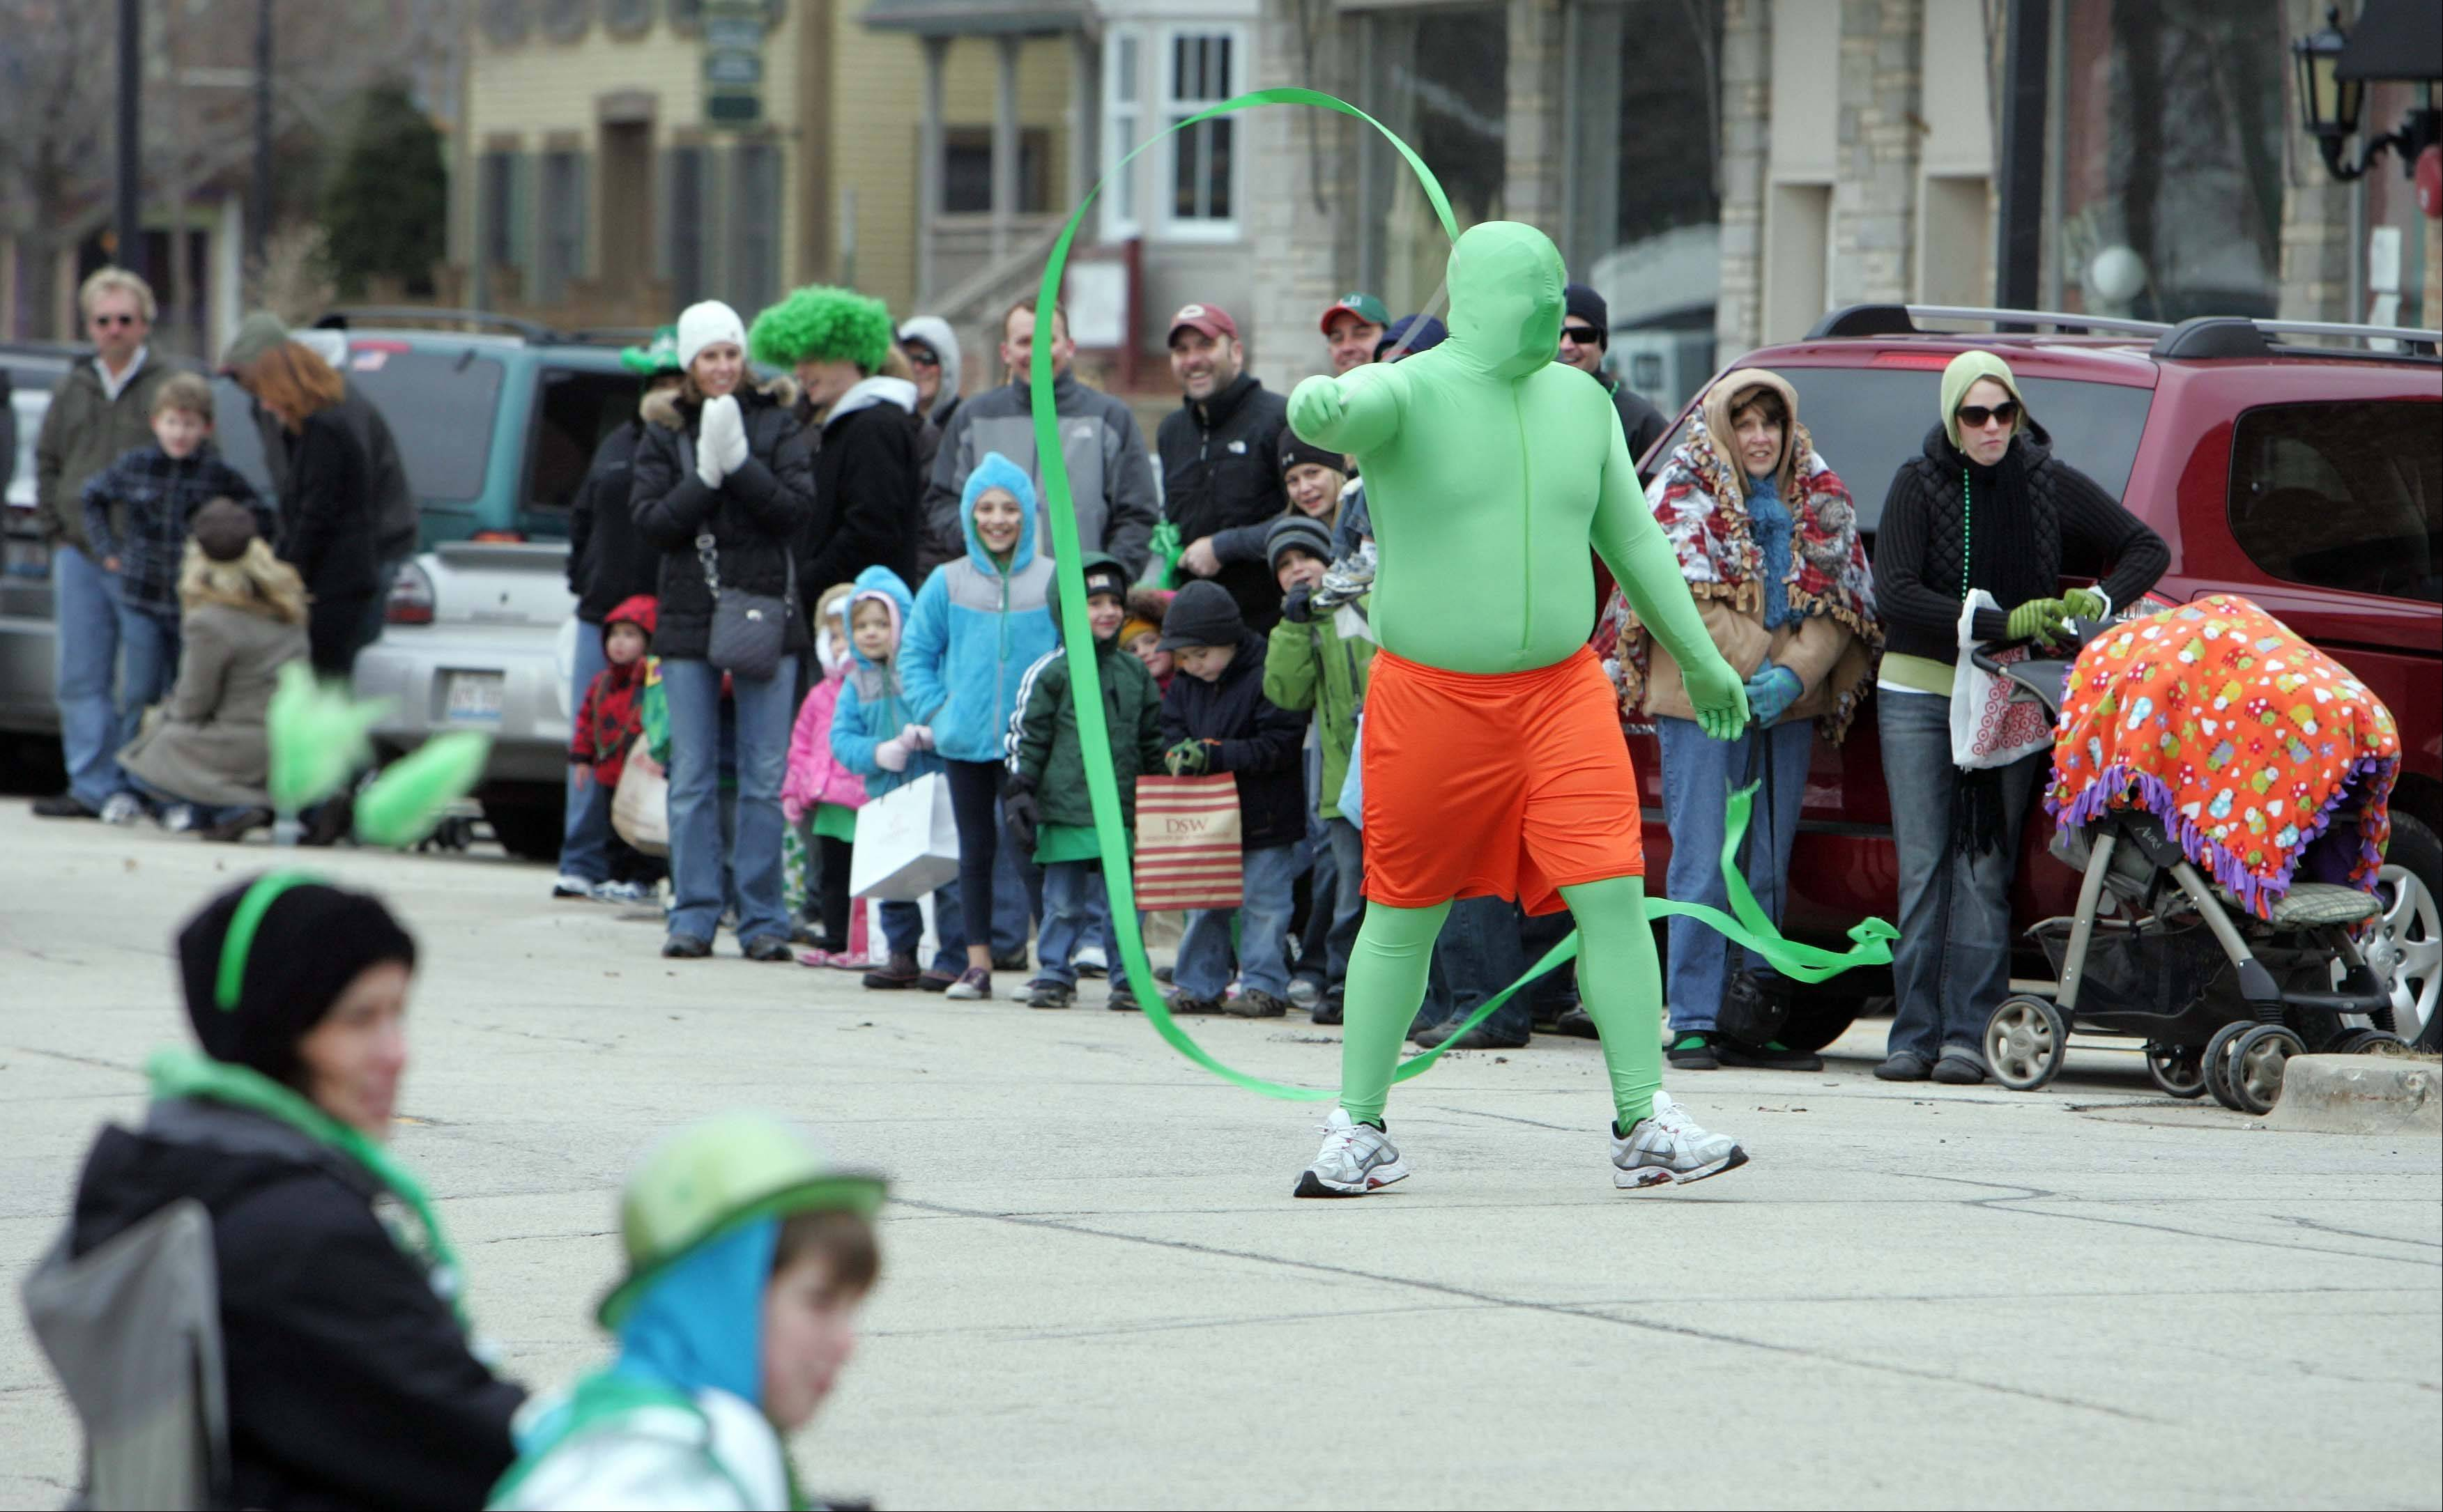 A man dressed in green performs for the crowd during the 2011 Thom McNamee Memorial St. Patrick's Day Parade in East Dundee.